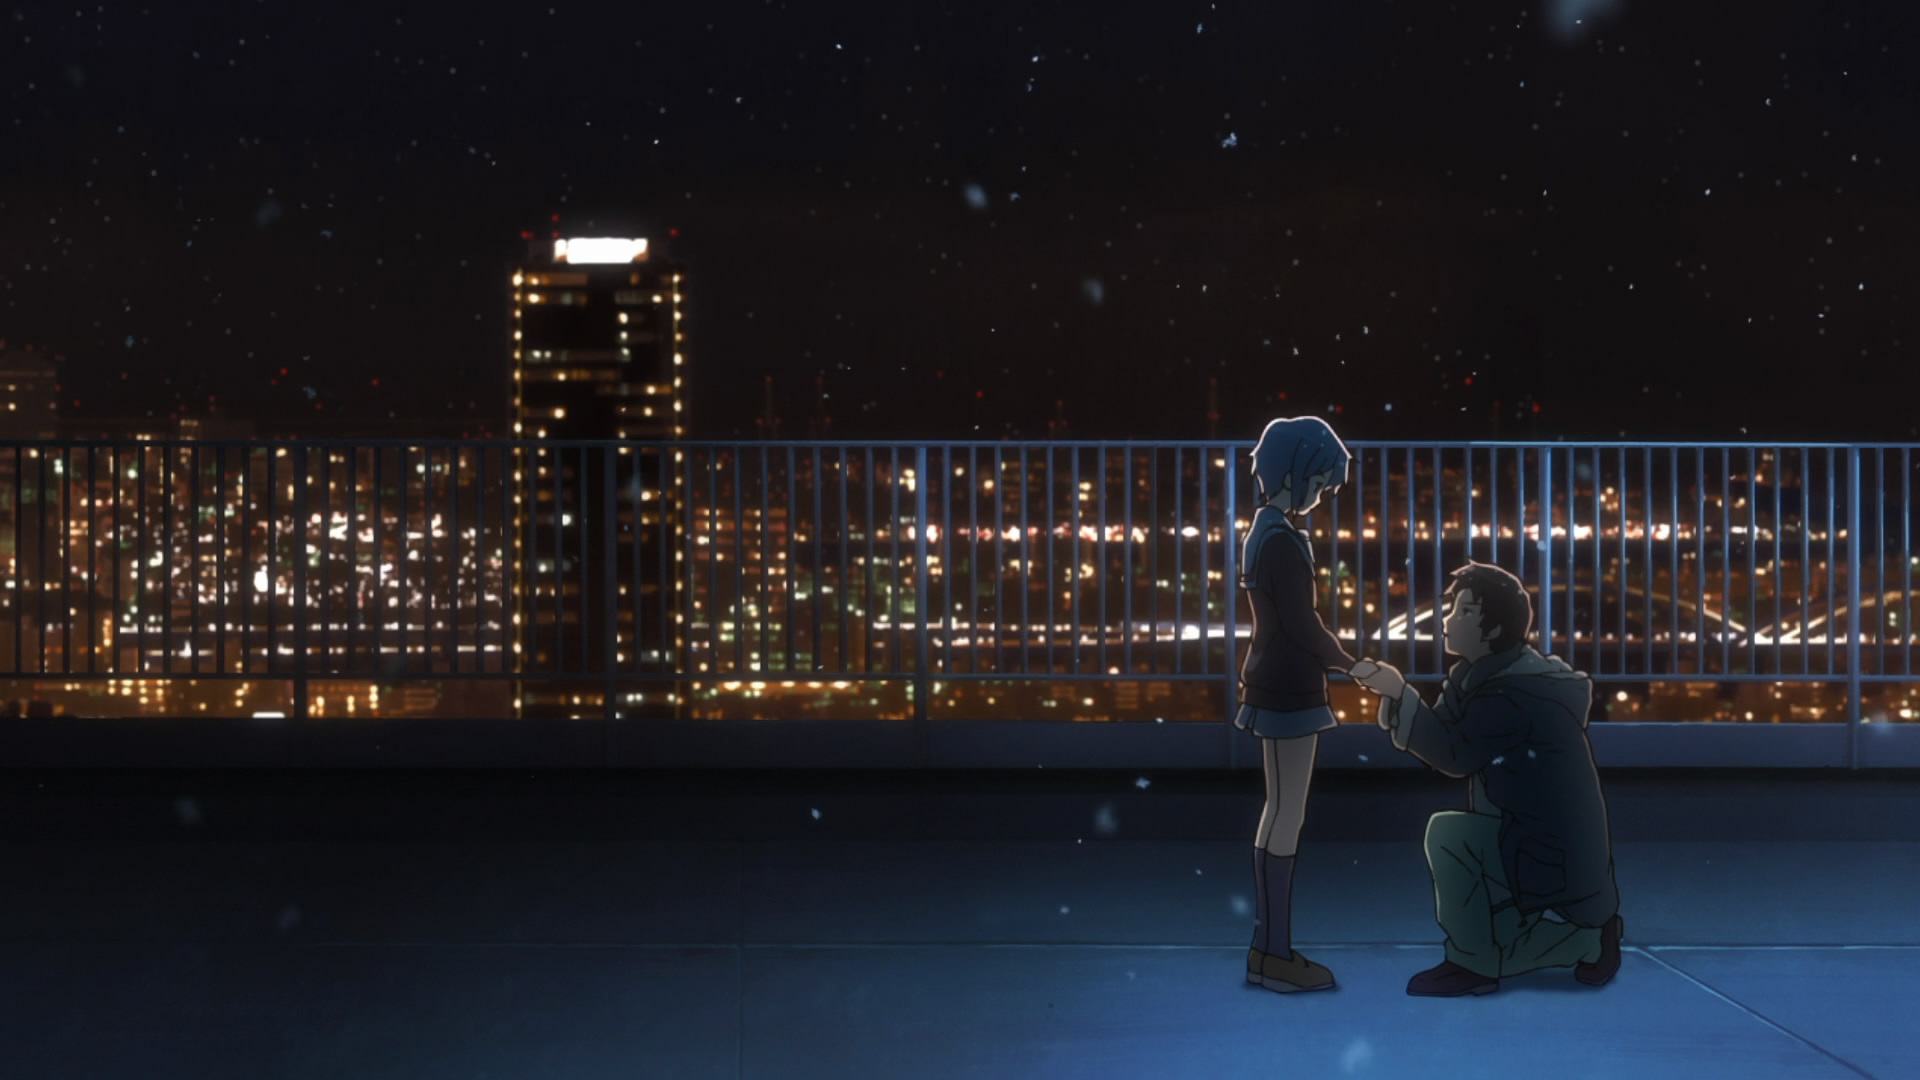 Boy Proposing Girl Hd Wallpaper Moments In Anime 2010 When God Is Away Kyon Won T Pray